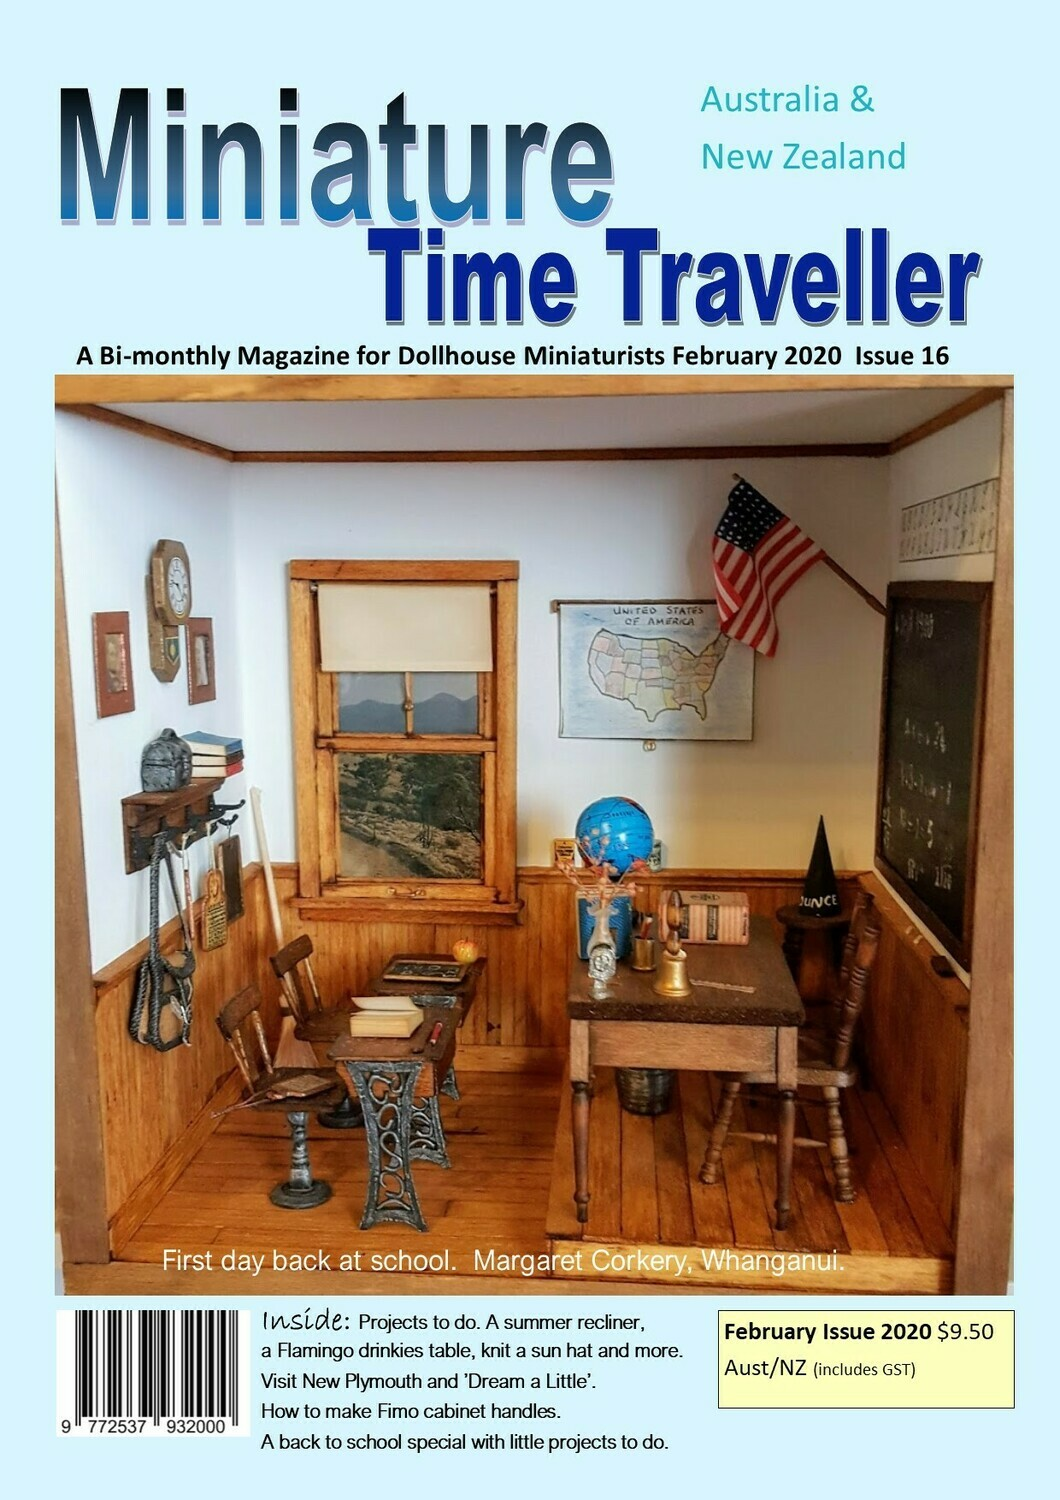 NEW ISSUE FEBRUARY 2020 Miniature Time Traveller Magazine - Single copy. P&P extra.